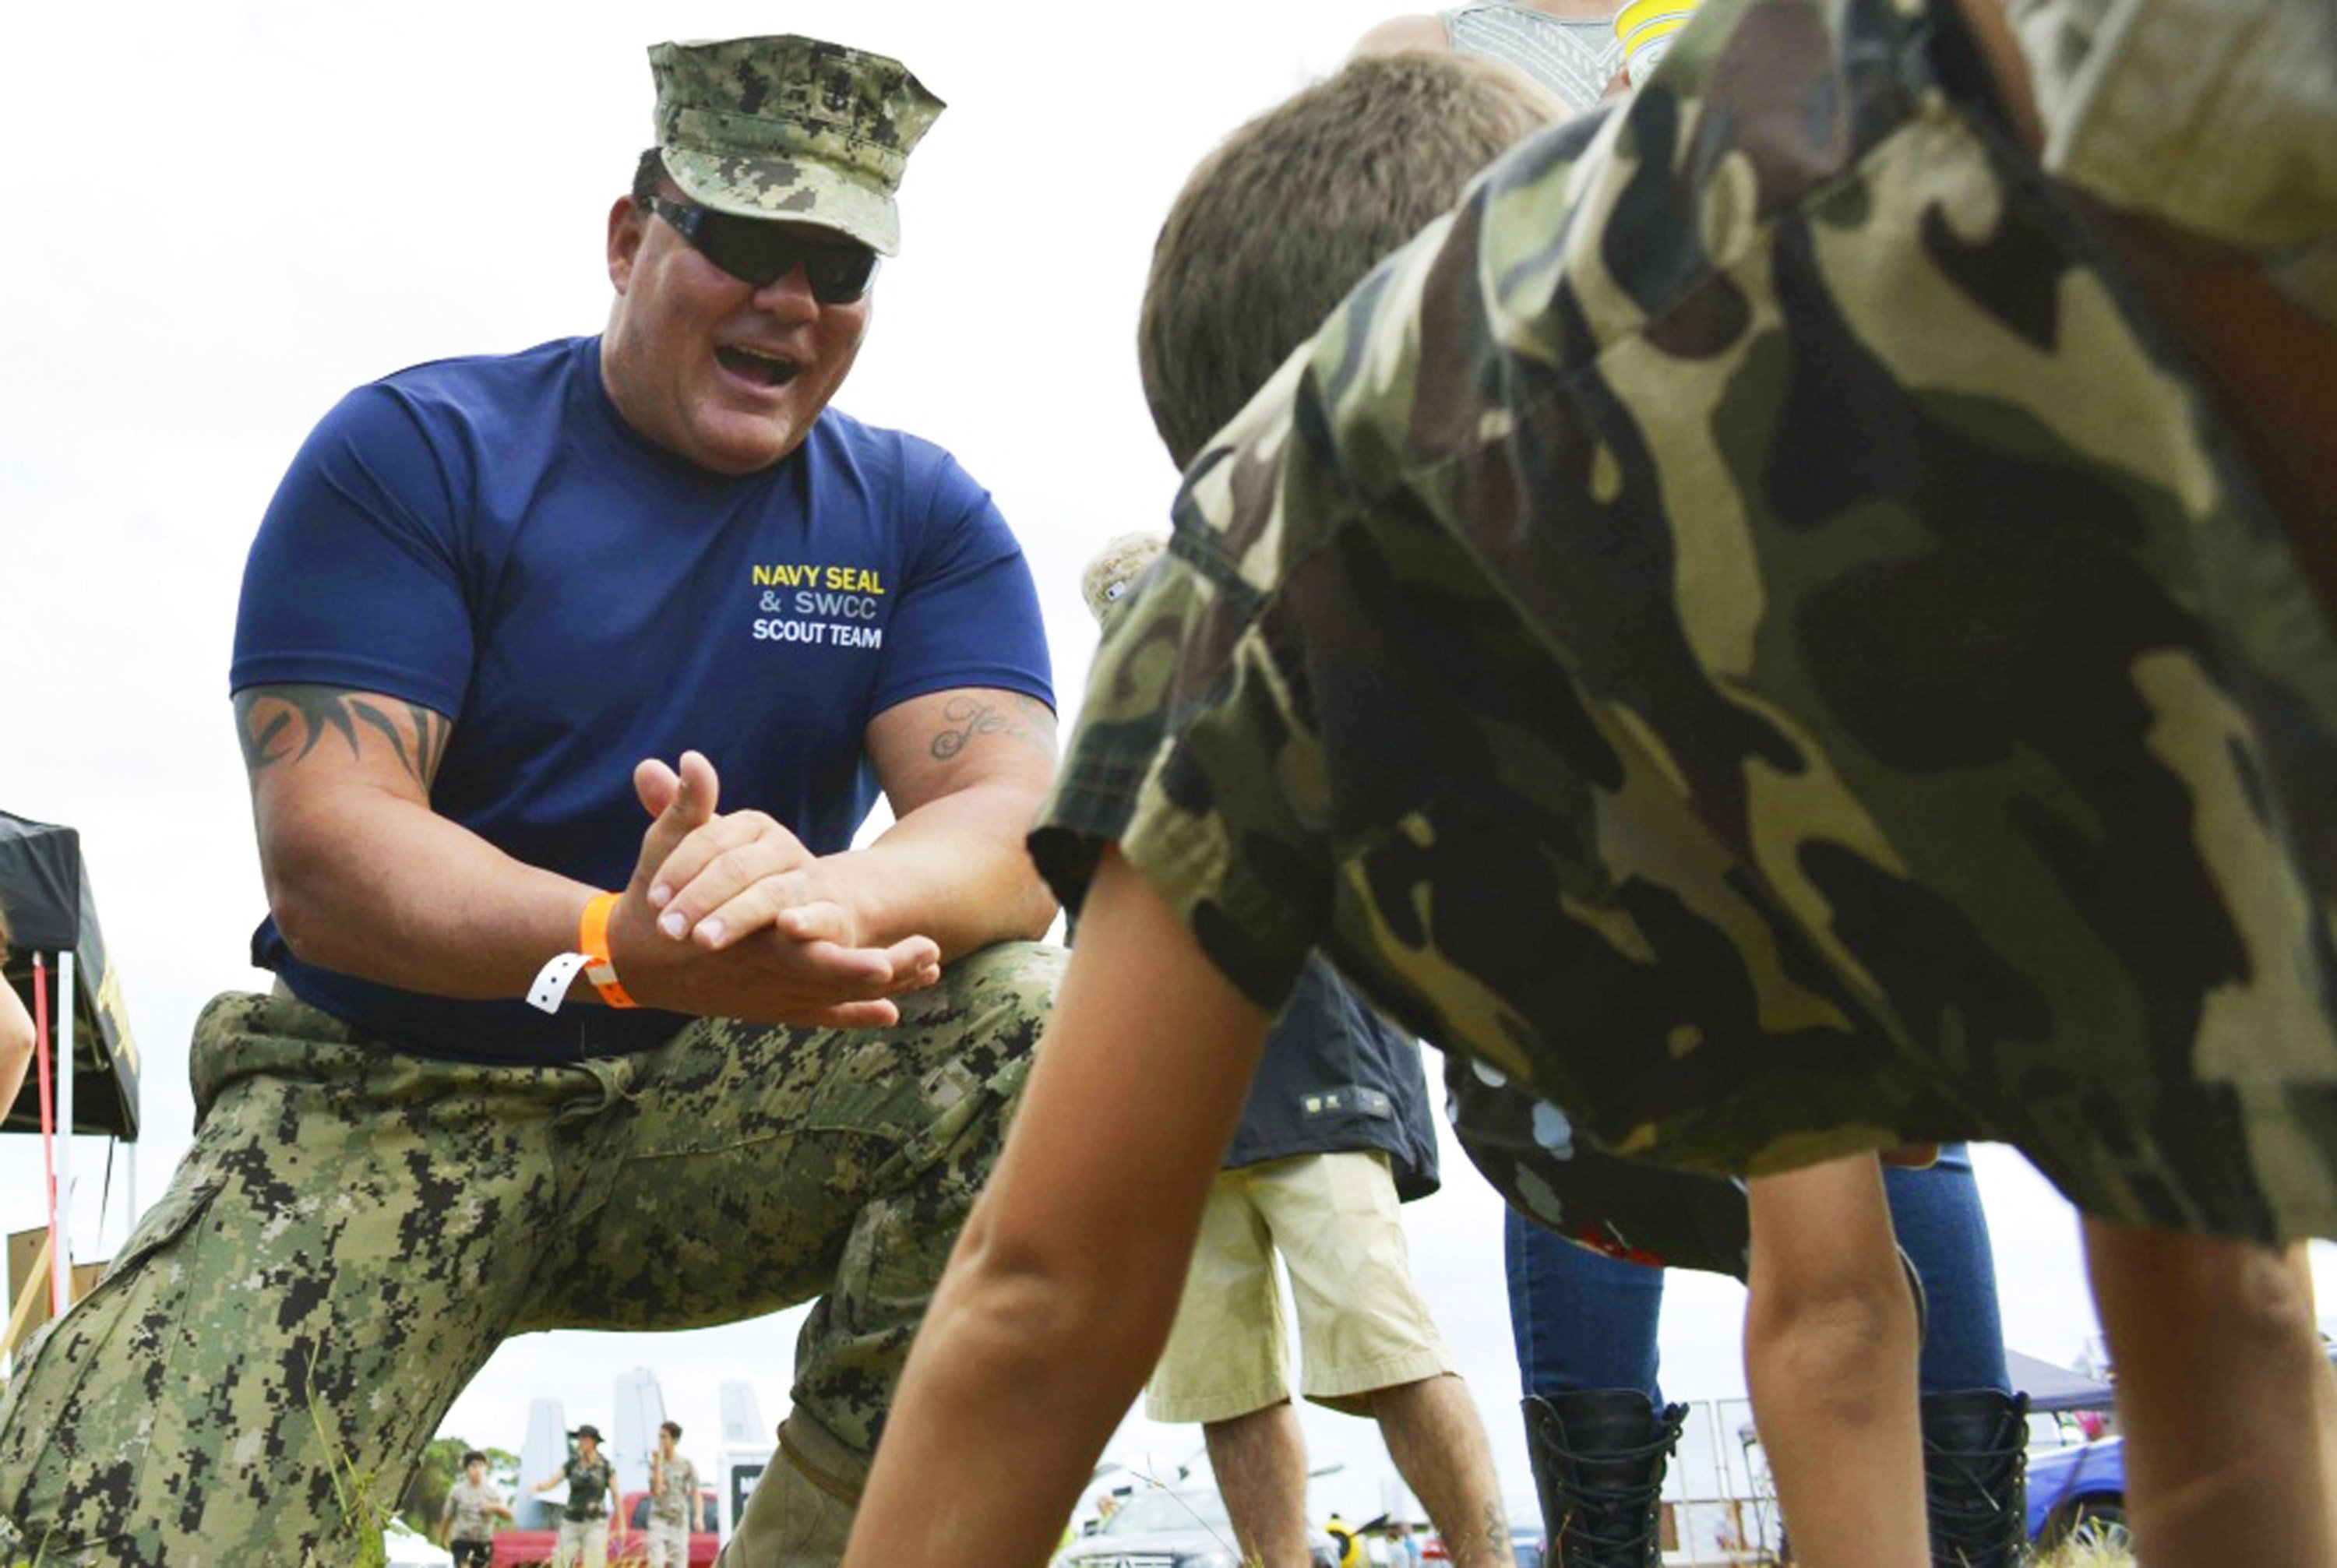 This Nov. 6. 2016 photo provided by the U.S. Navy shows Chief Petty Officer Joseph Schmidt III. (Petty Officer 2nd Class Pyoung K. Yi/U.S. Navy via AP)